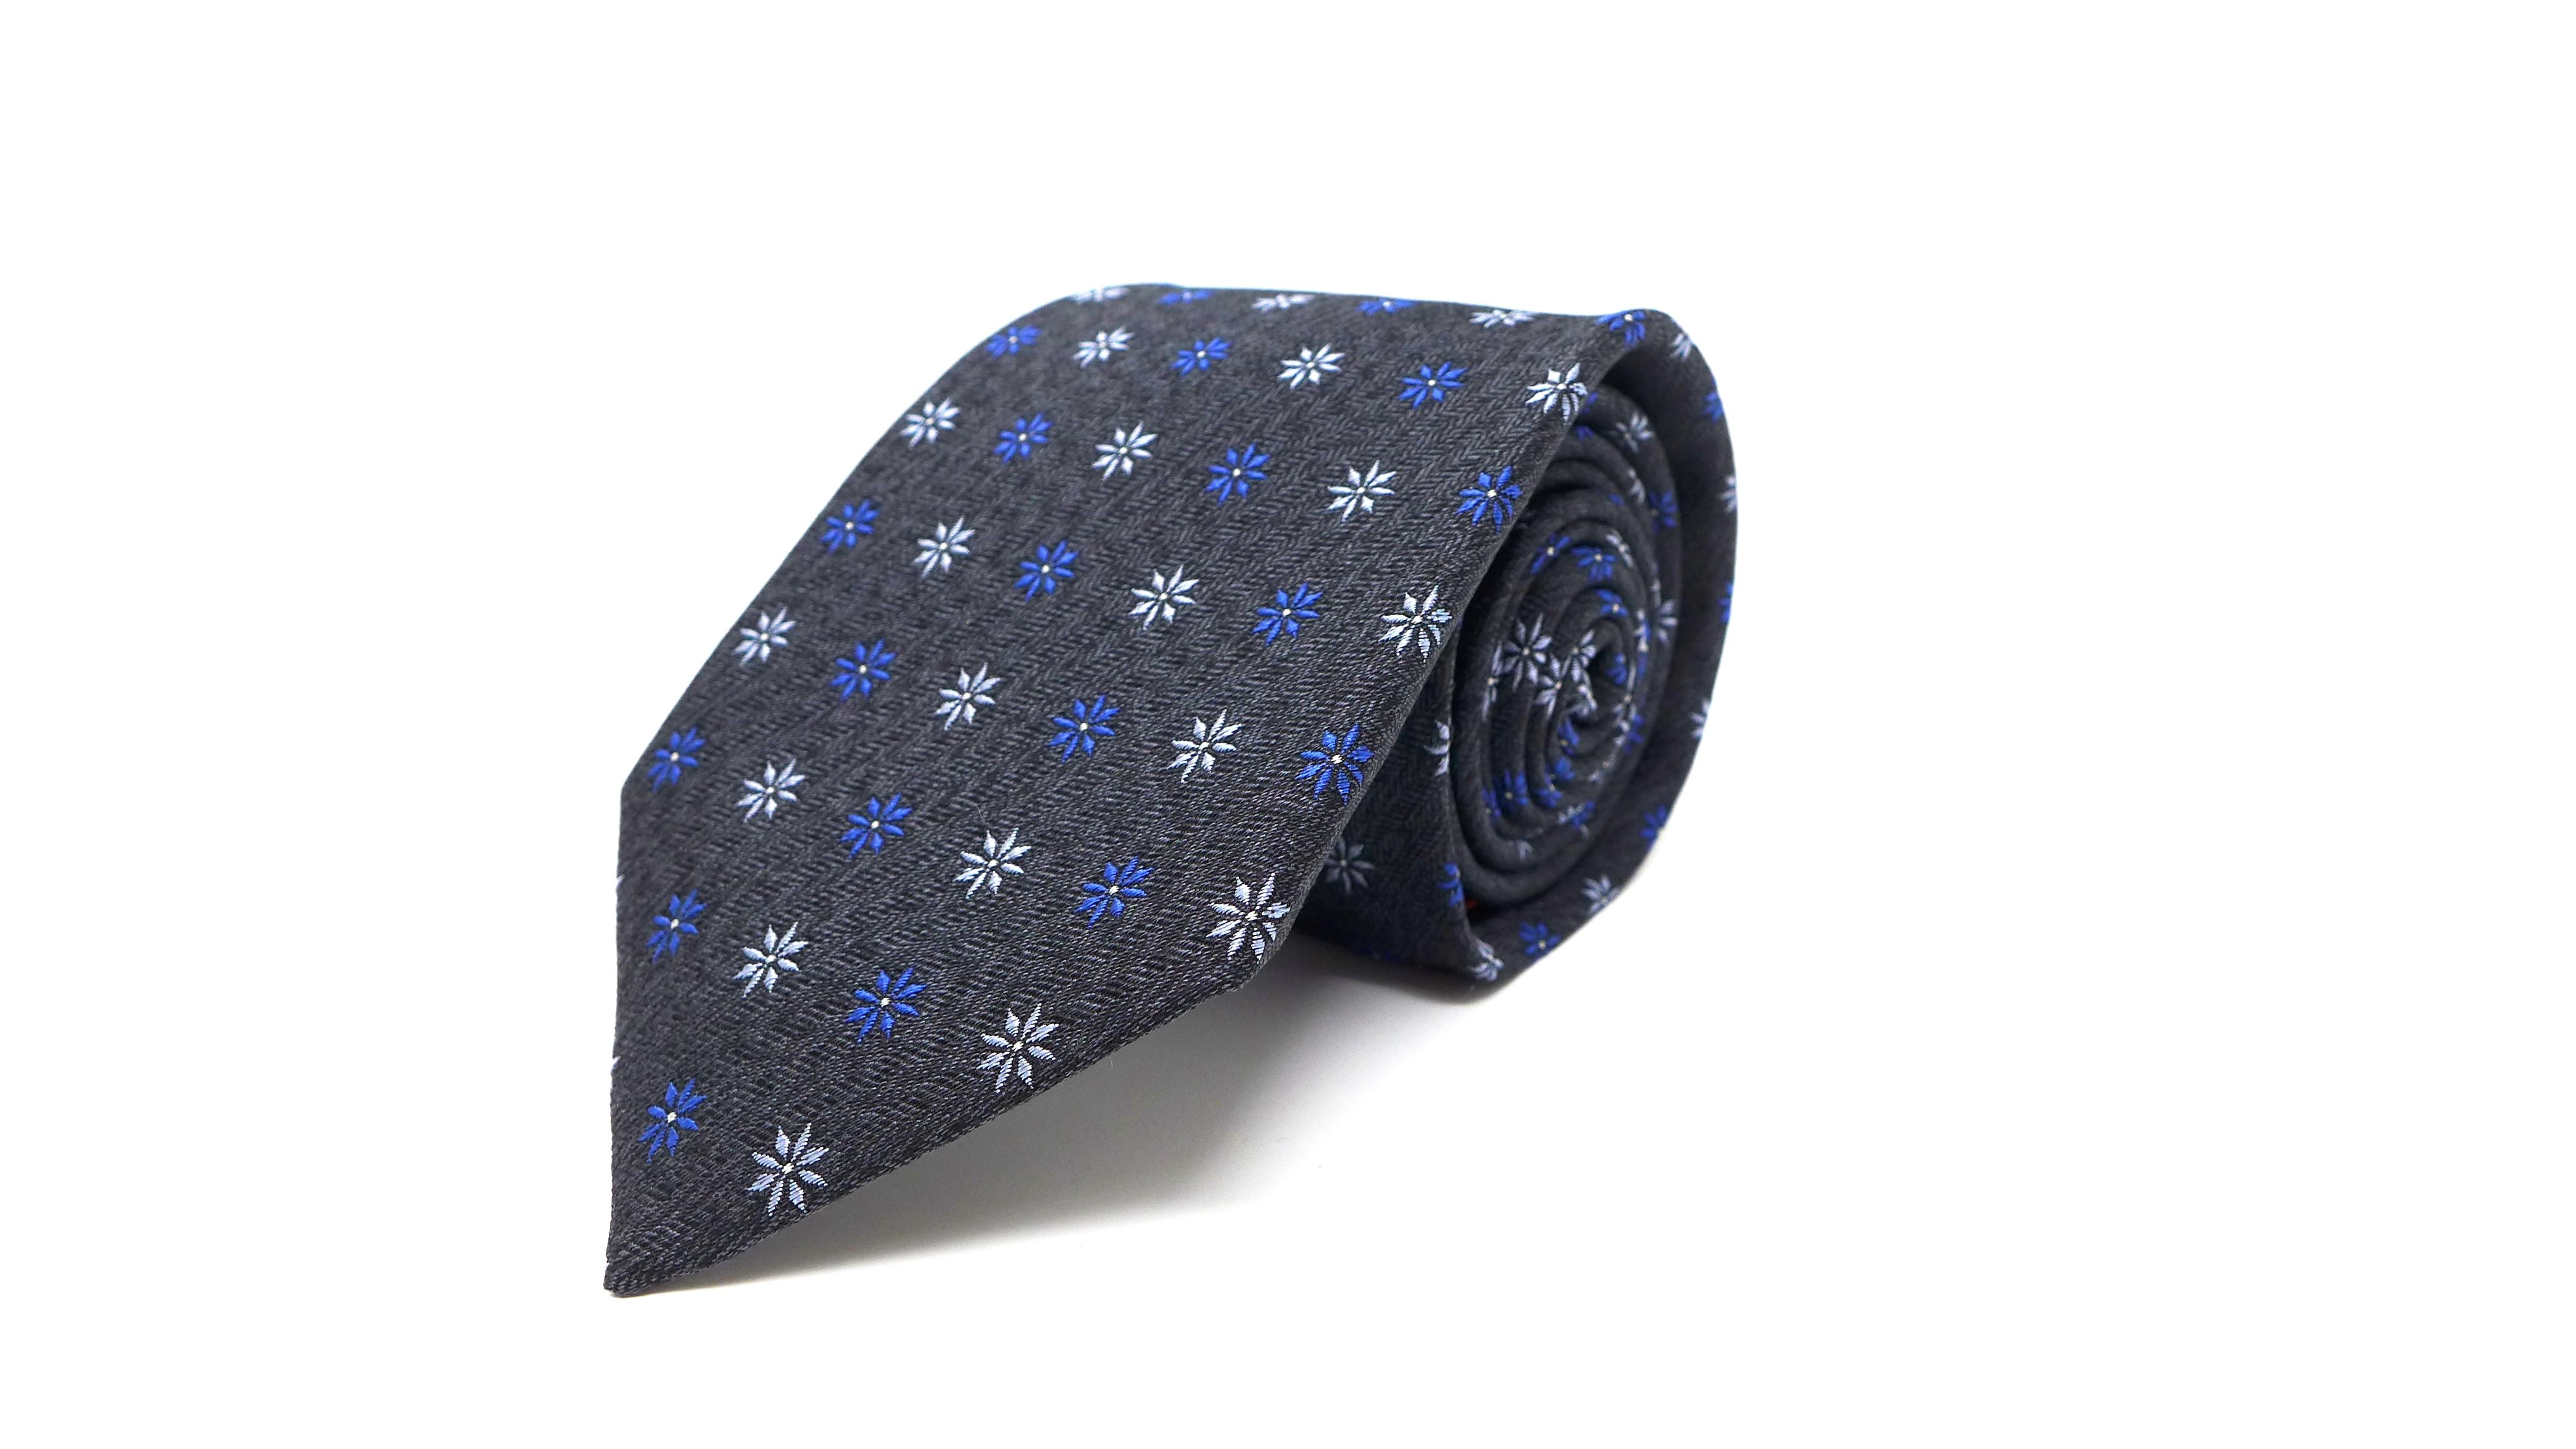 SC TIE STAR ANISE CHARCOAL